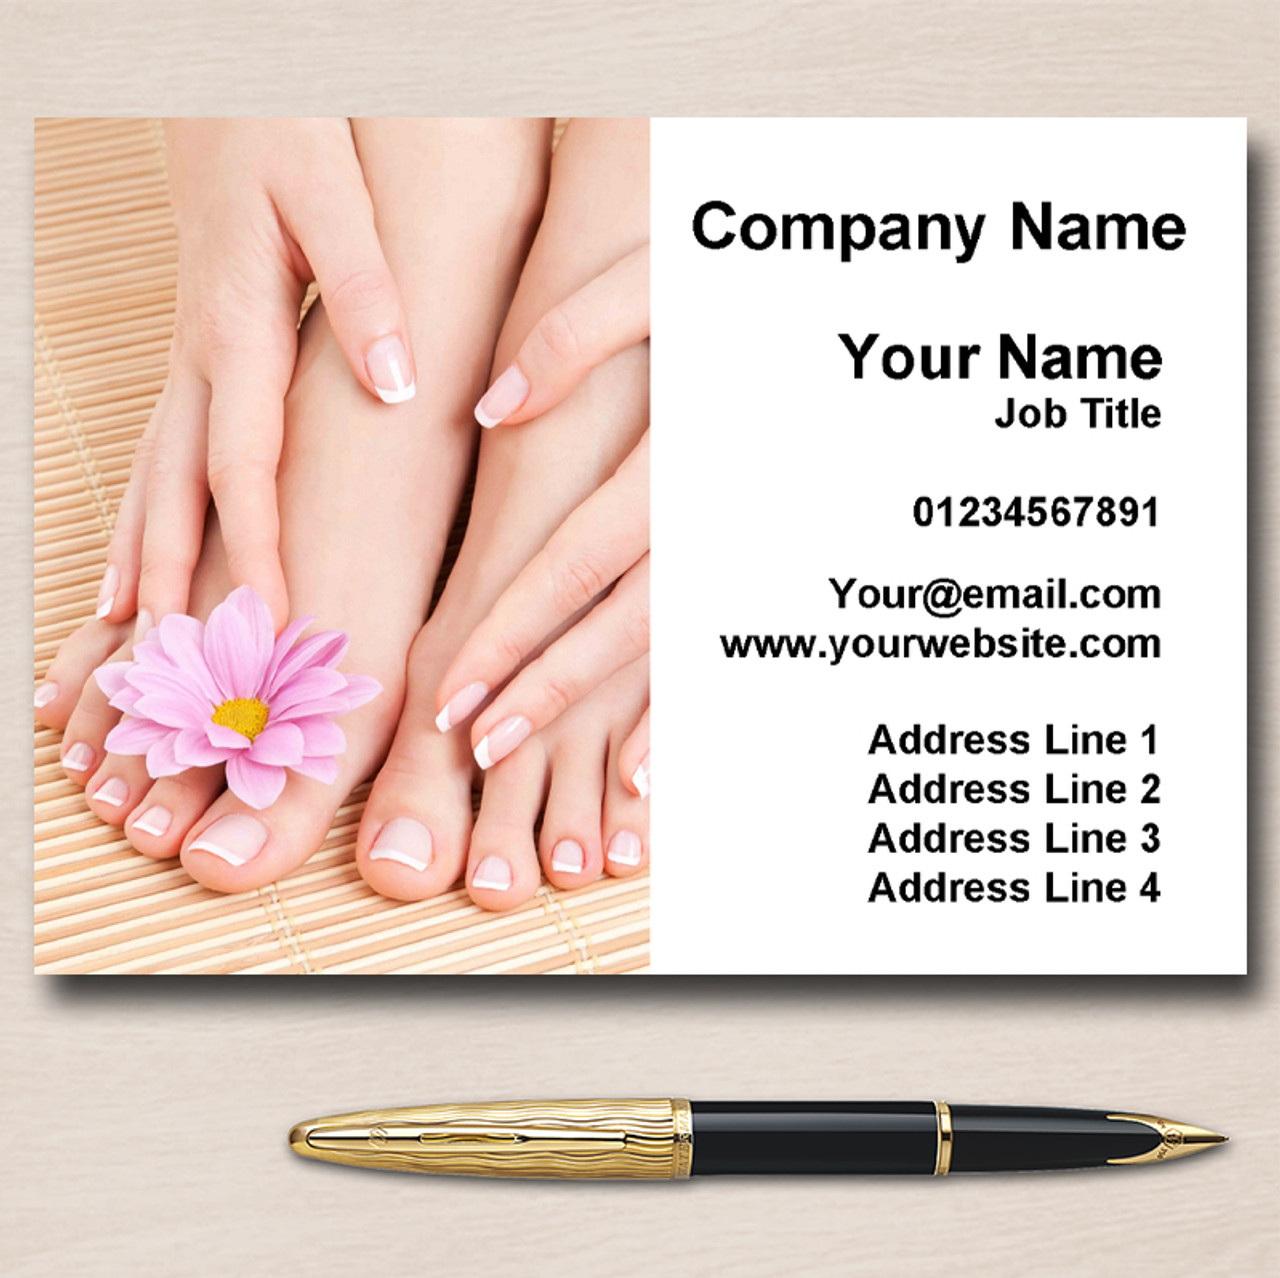 Nail Pedicure Manicure Salon Personalised Business Cards - The Card Zoo